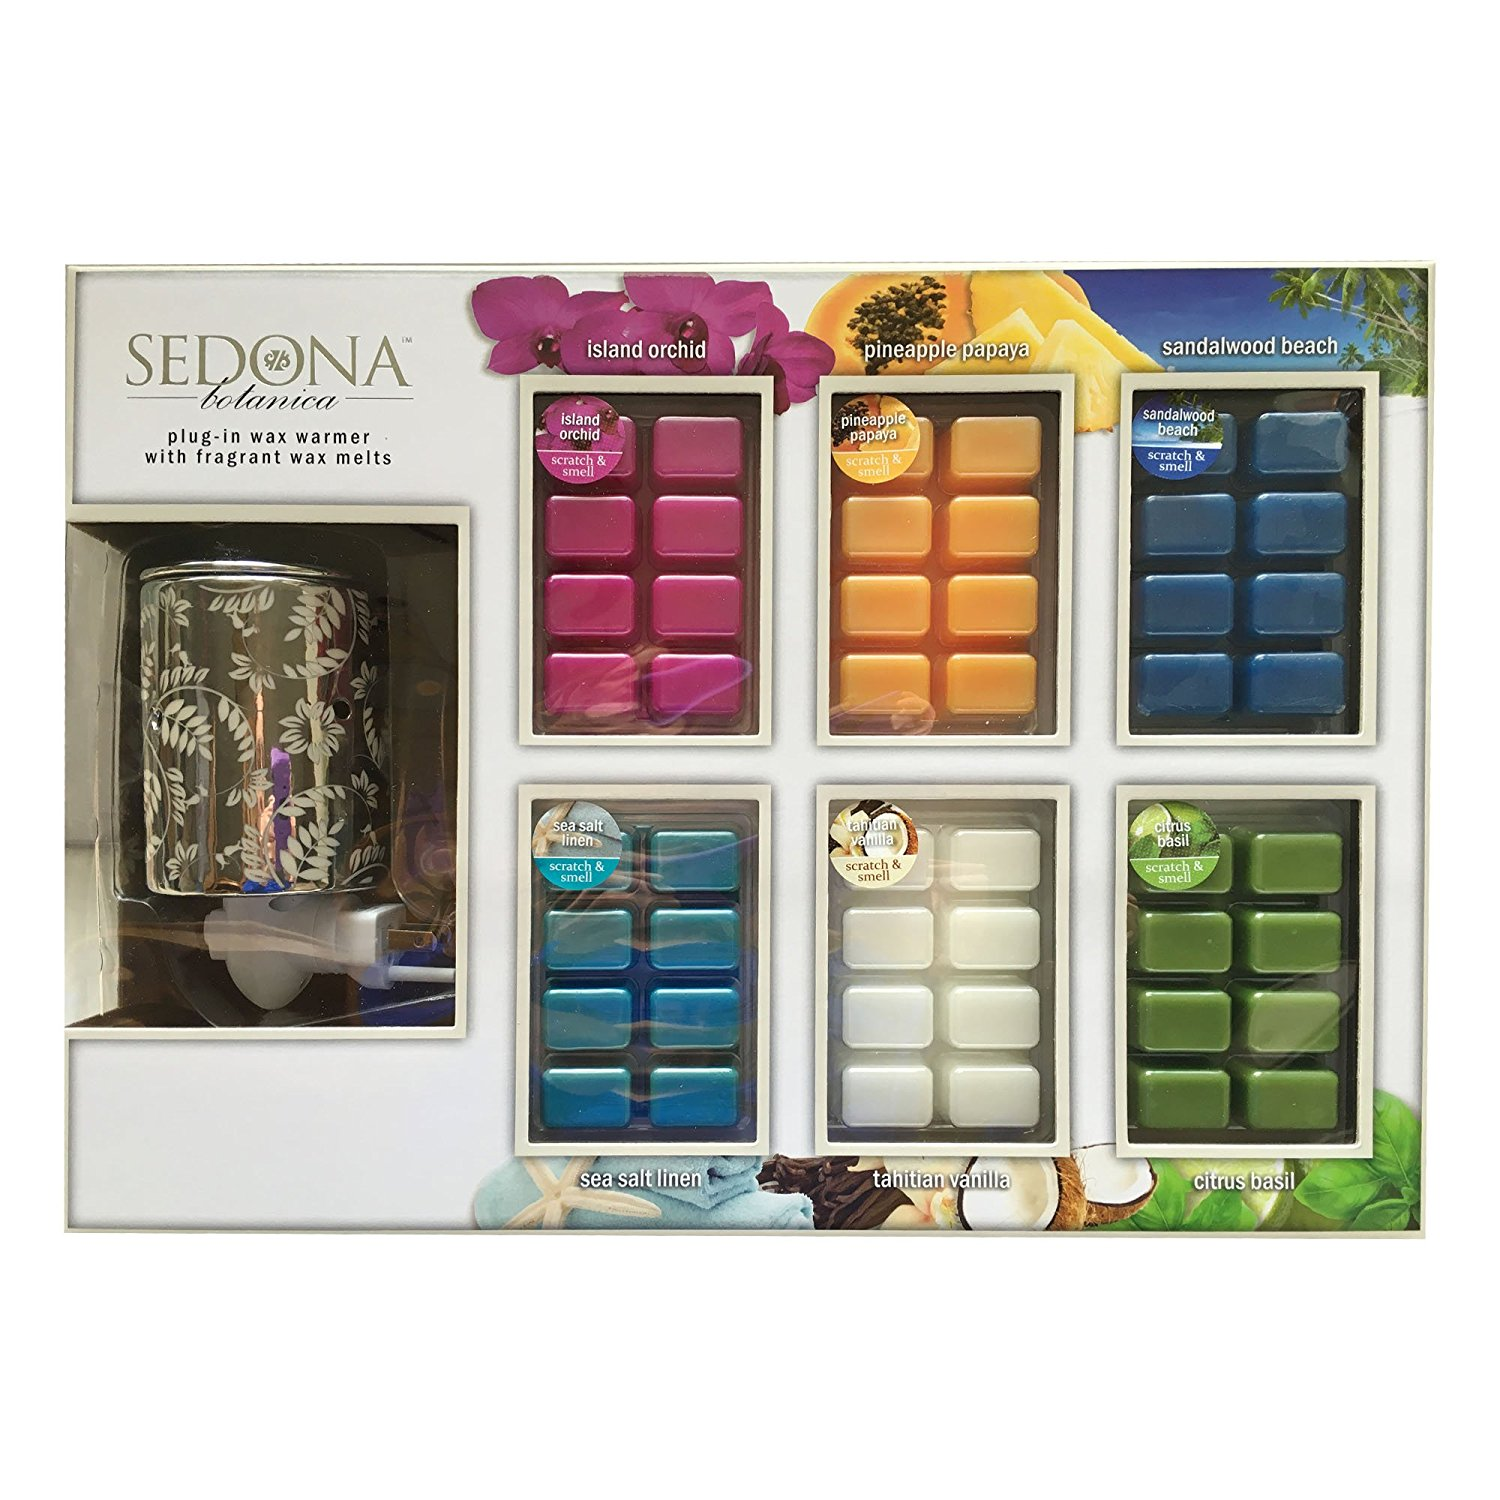 Sedona Botanica Plug In Wax Warmer Amp 6 Packs Of Fragrant